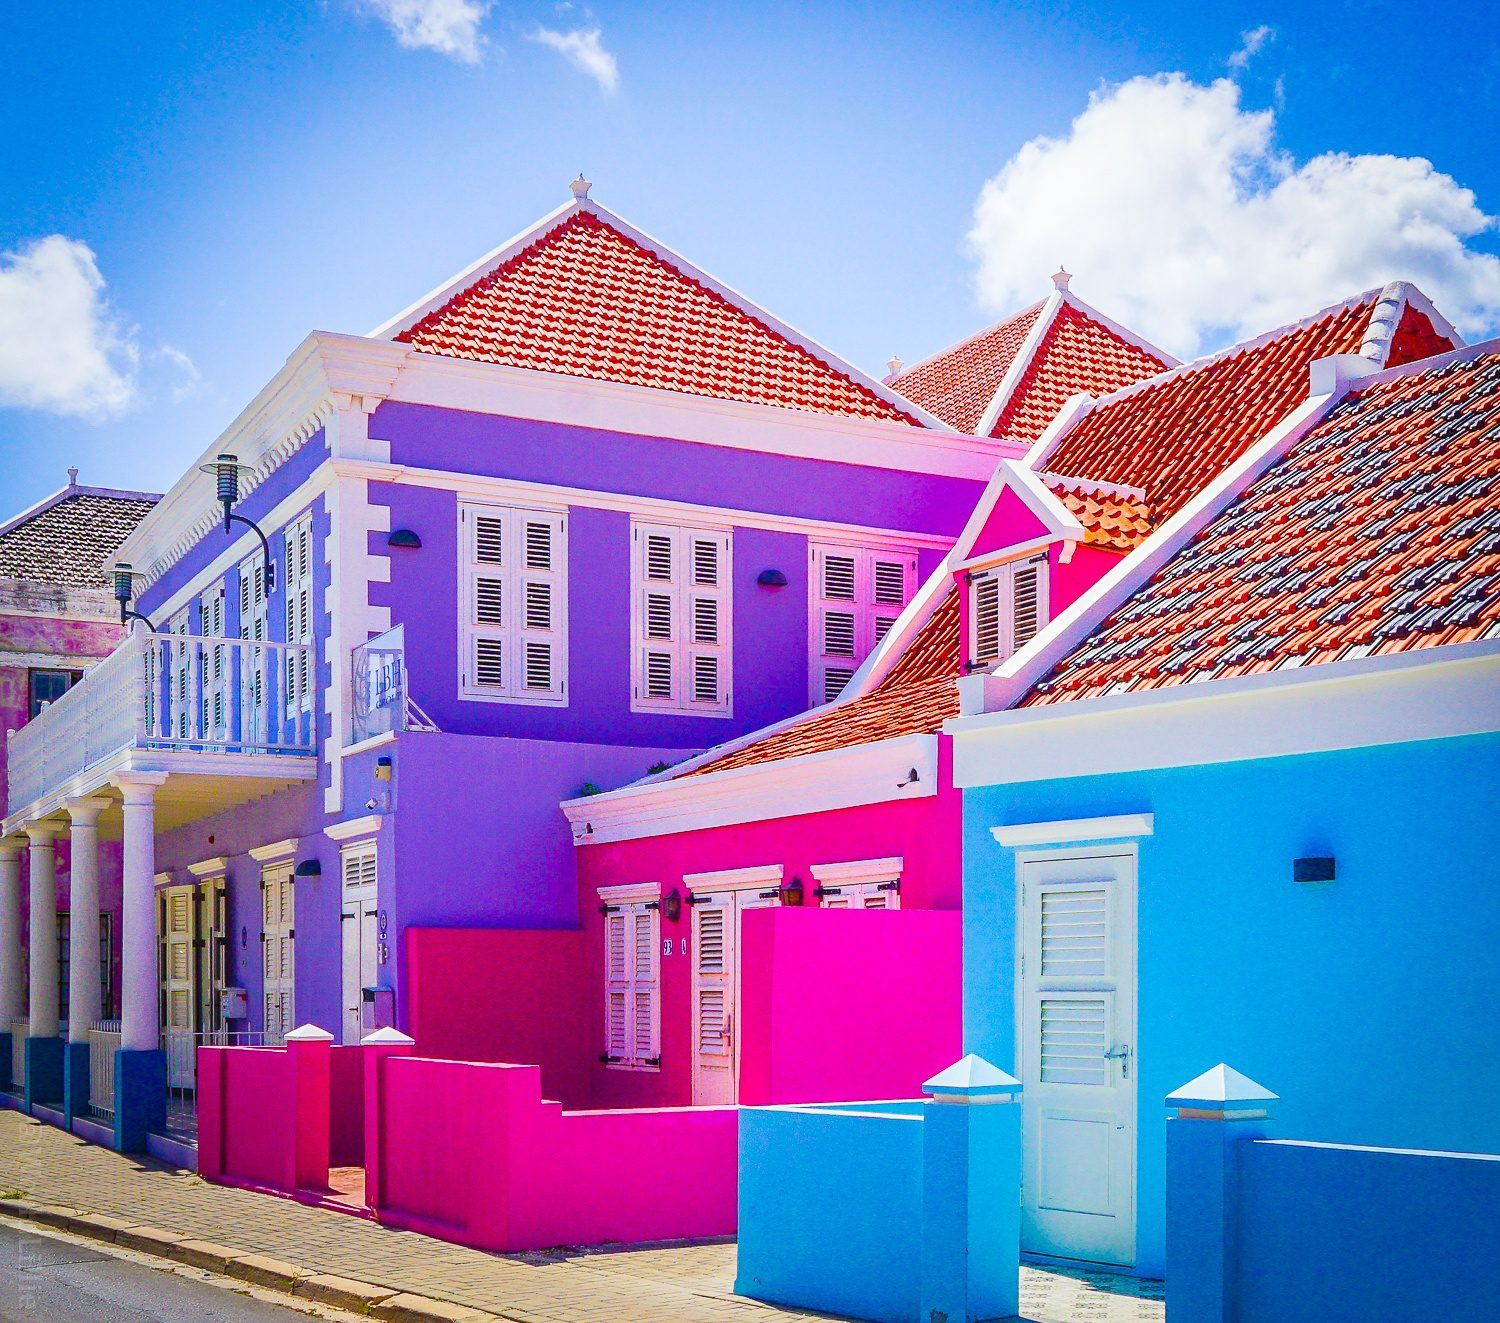 Candy-colored houses.